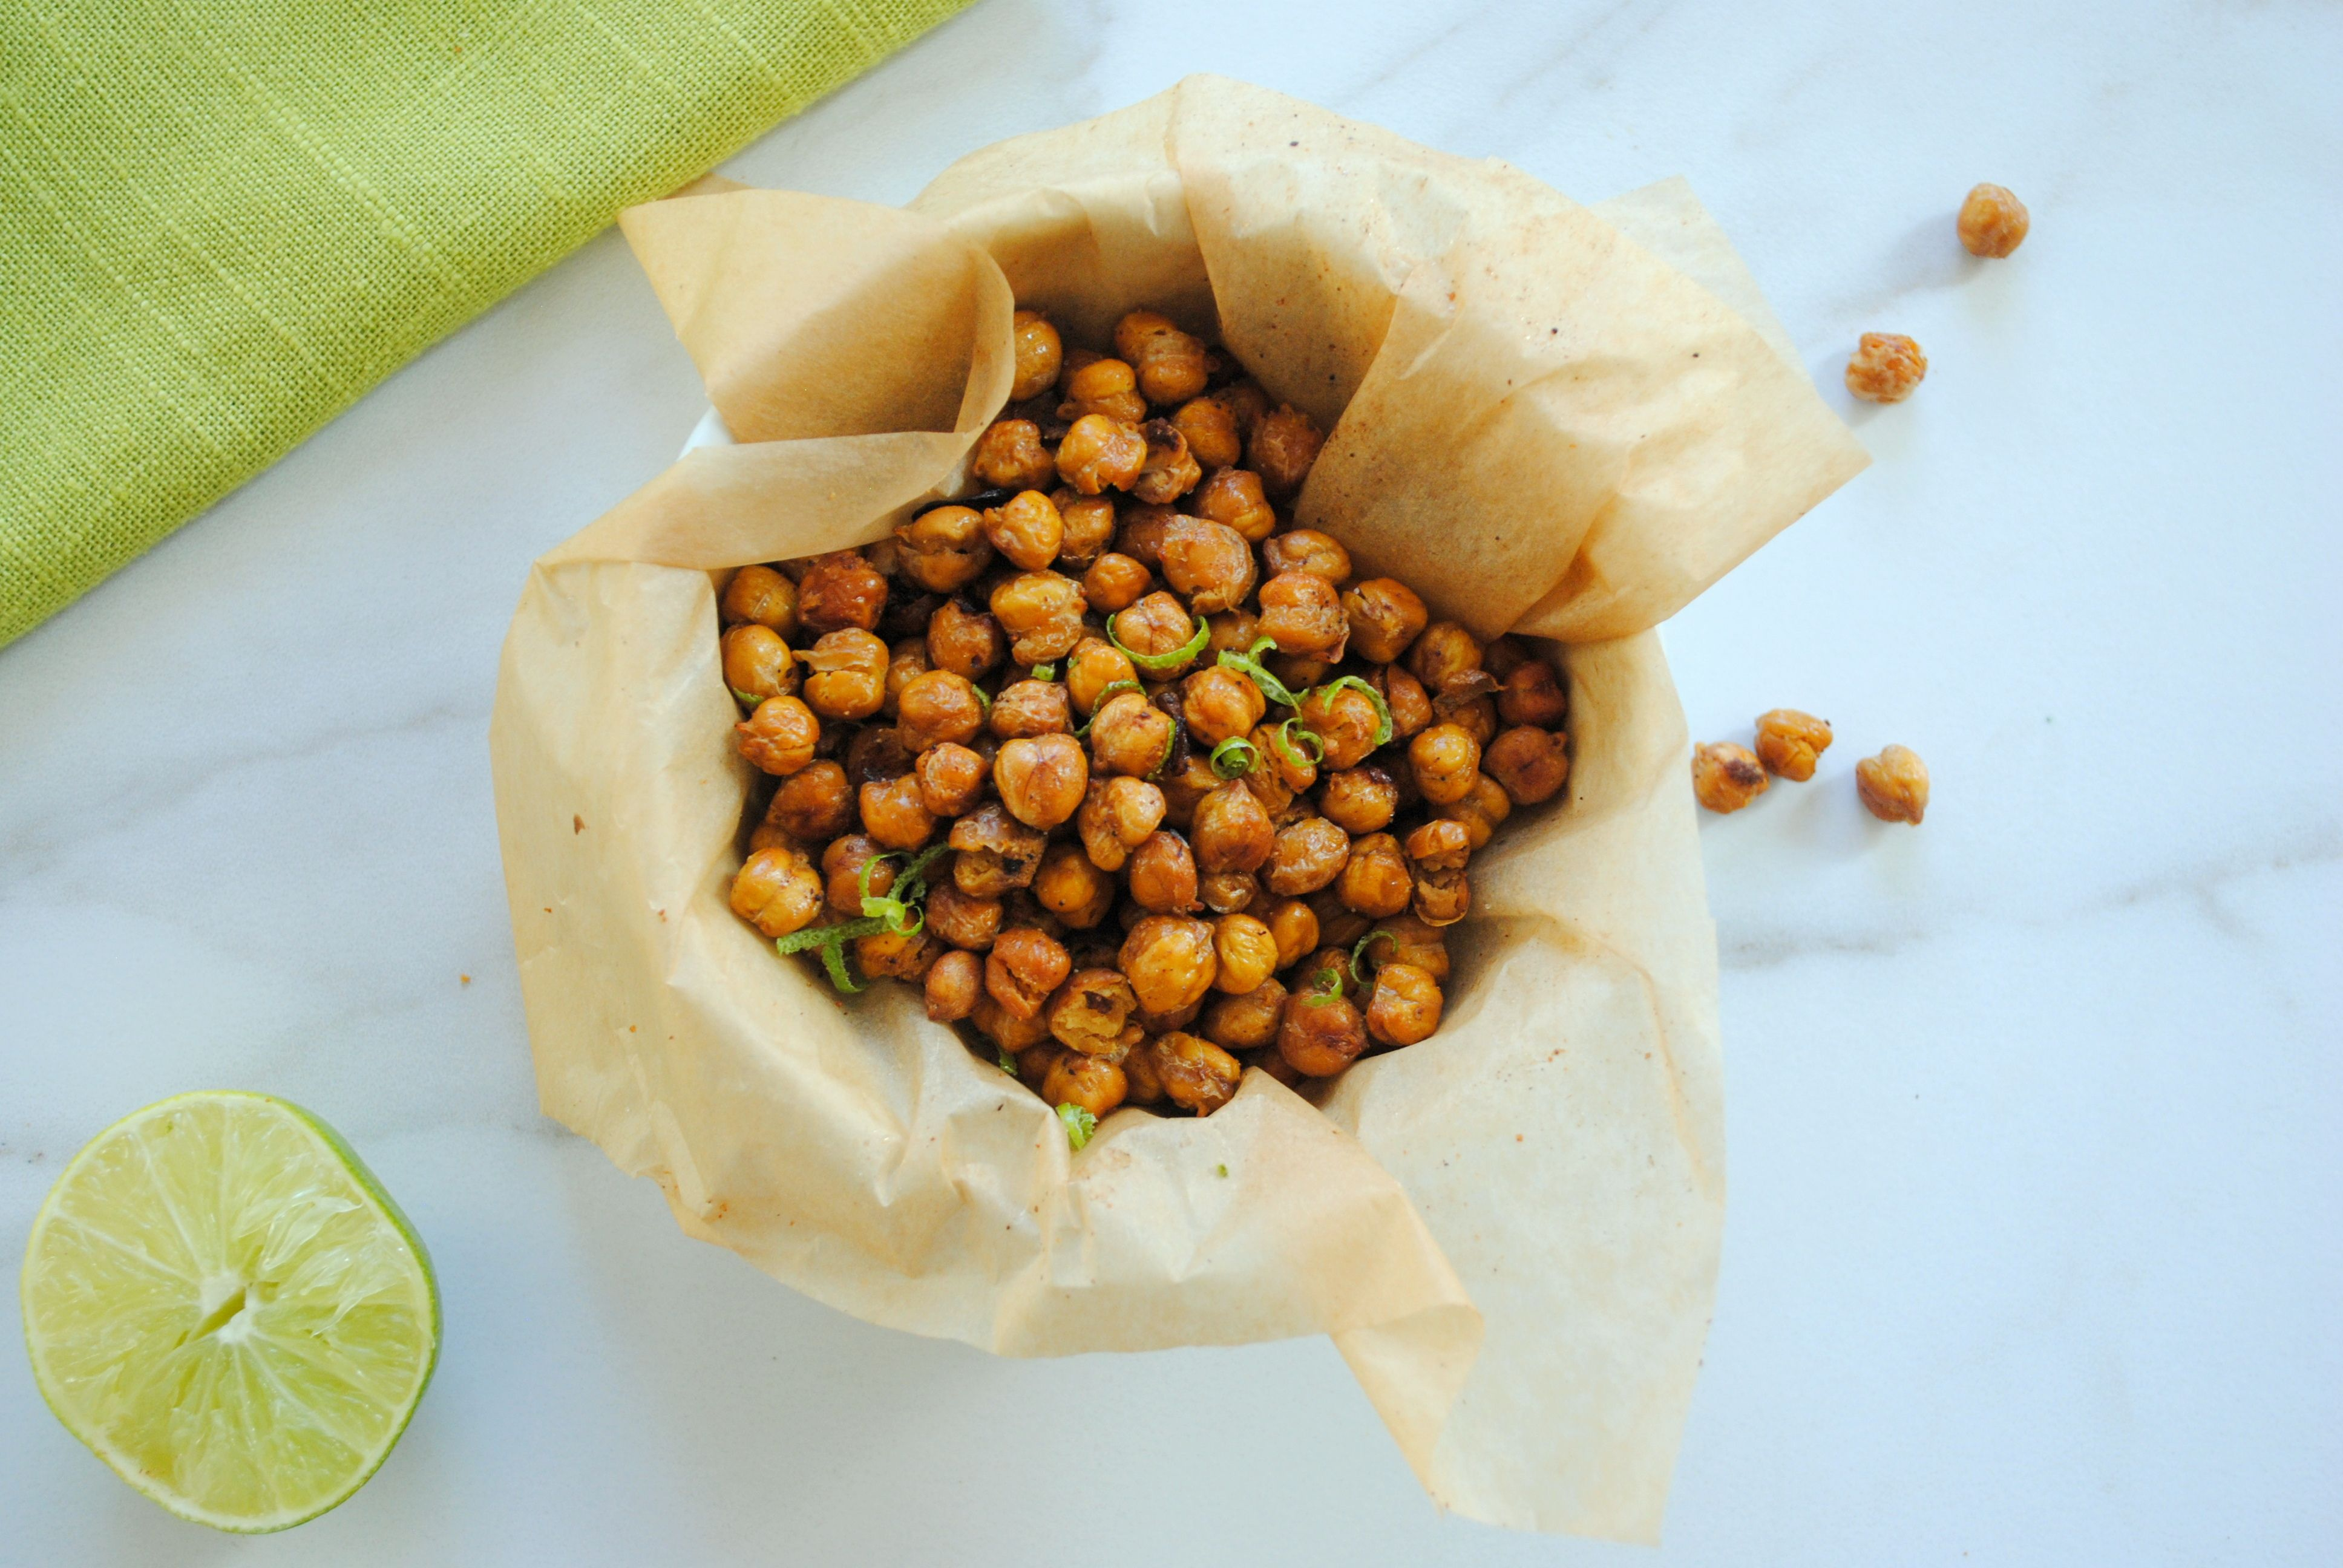 Cumin-Lime Roasted Chickpeas Are a Crunchy Fiber-Packed Snack